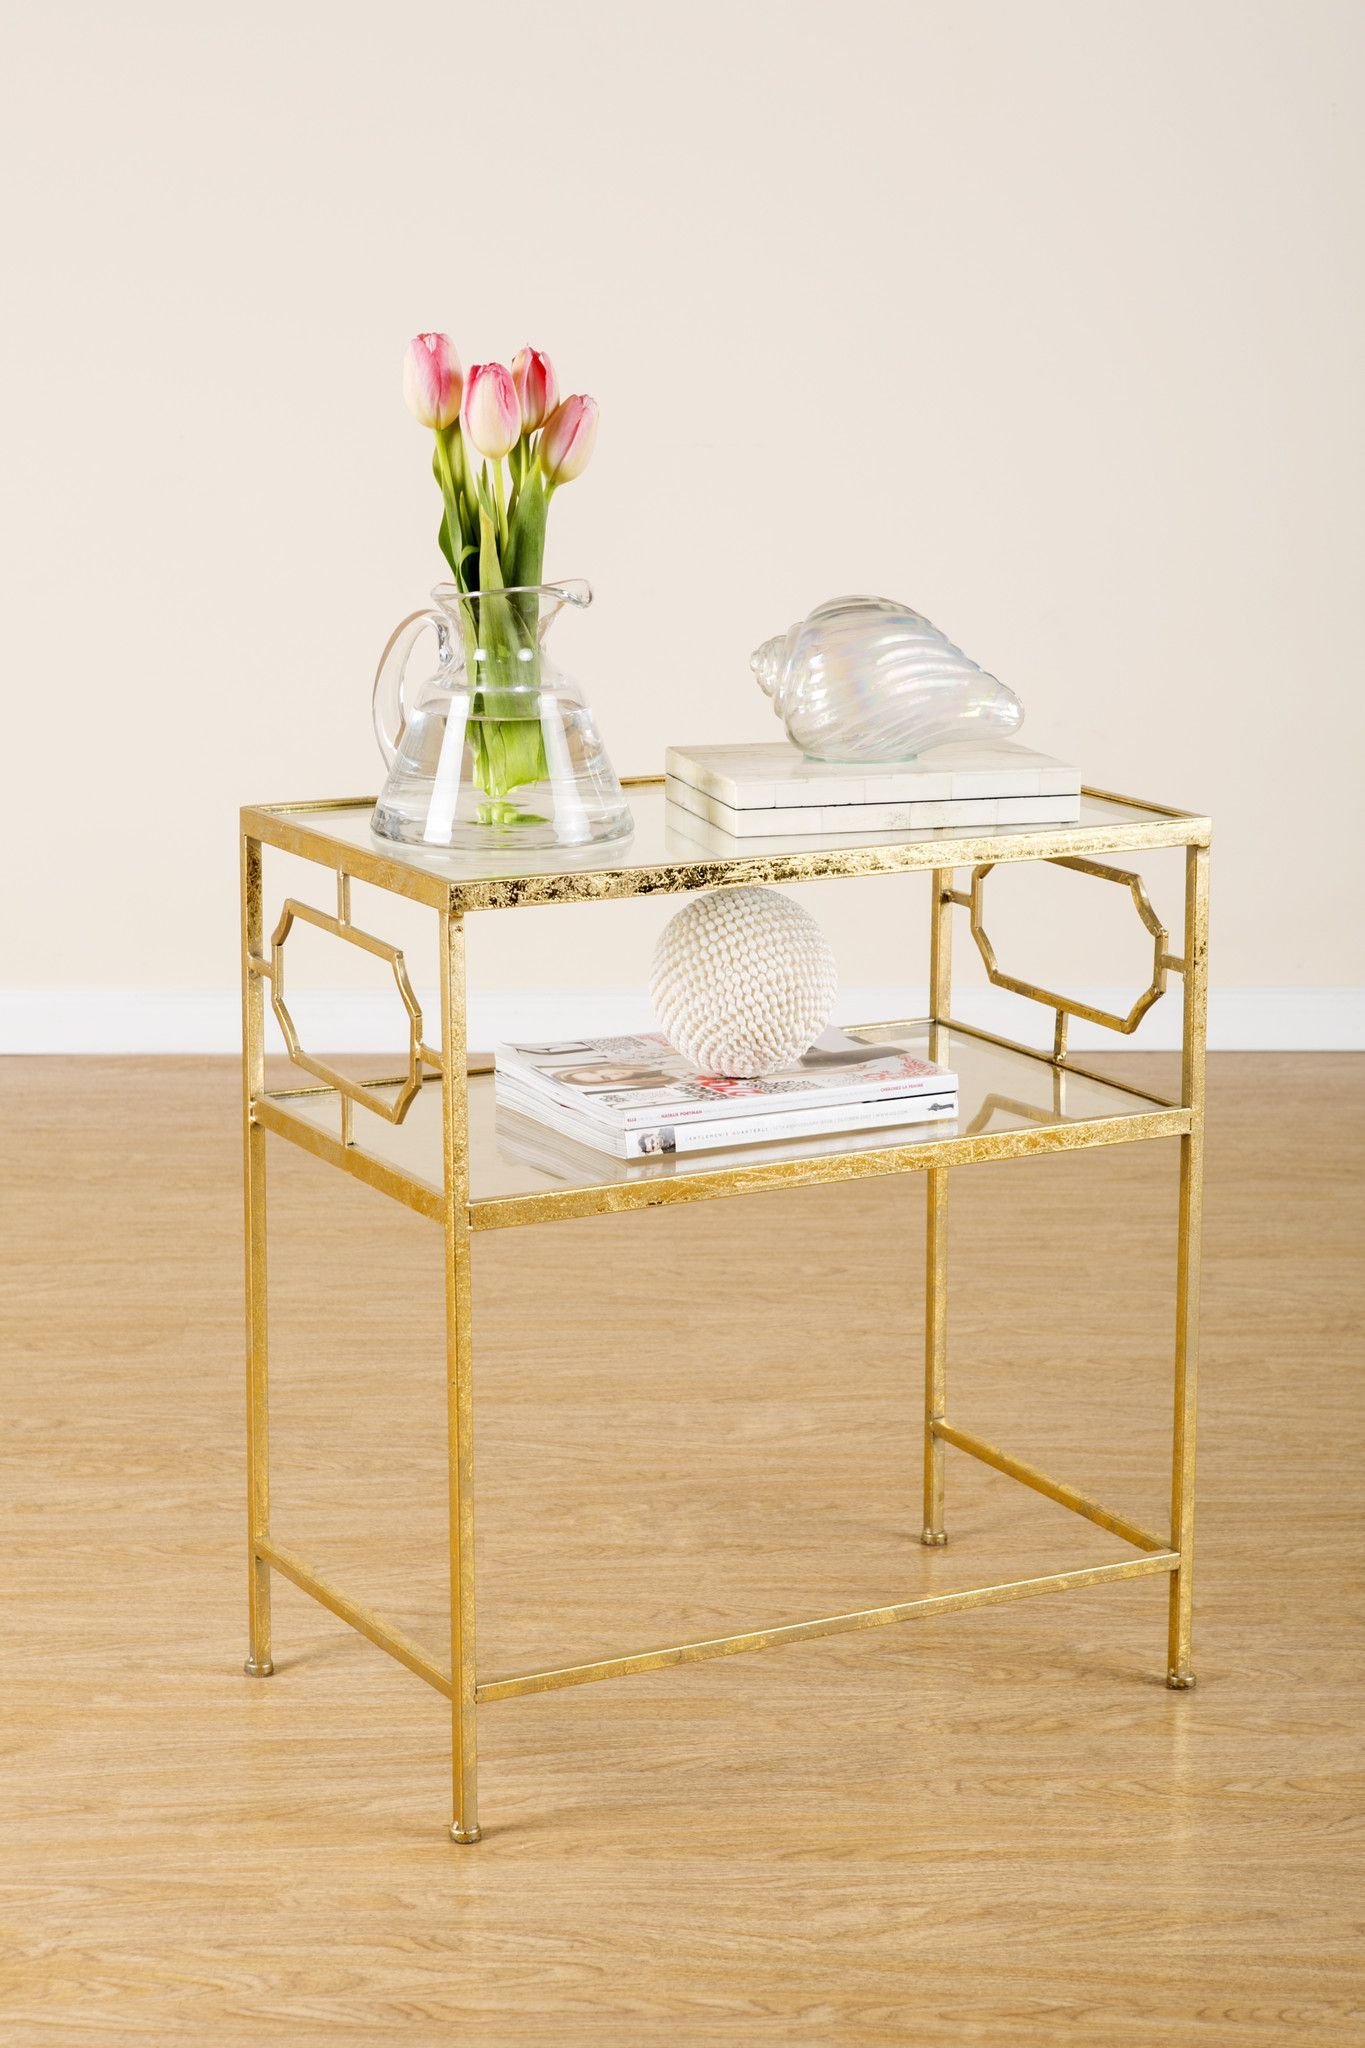 Konsole Für Küchenklappen T114 Iris Side Table White And Gold Furniture Table End